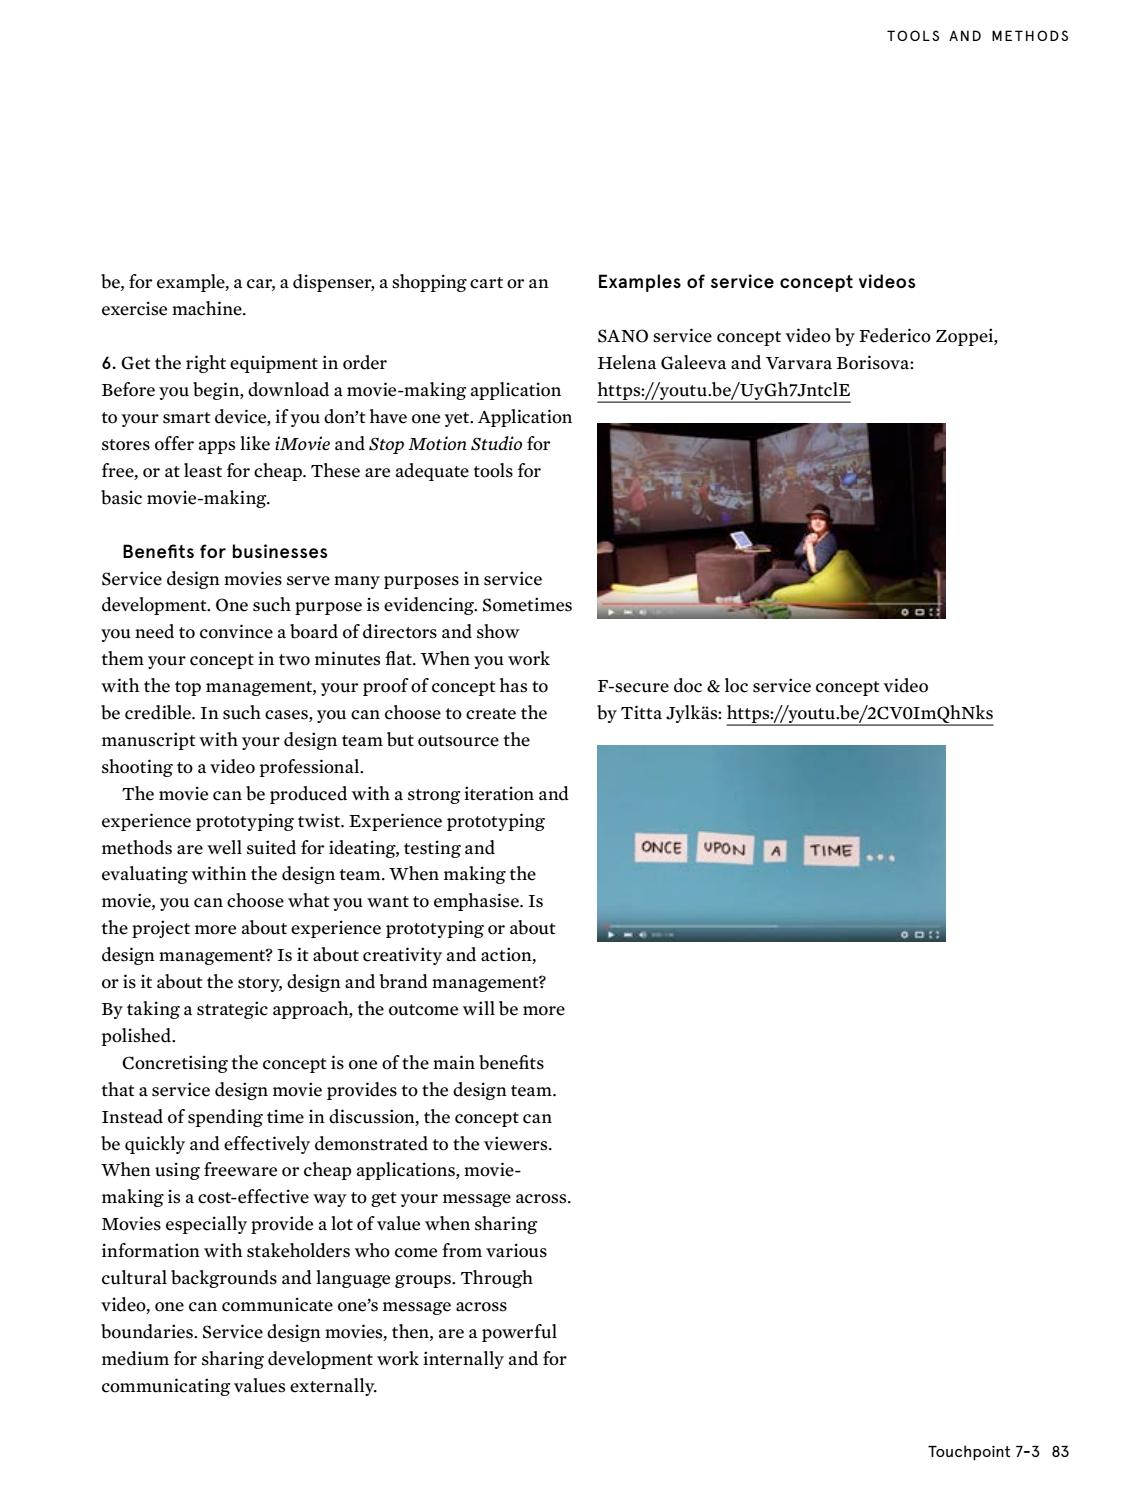 Touchpoint Vol  7 No  3 by Service Design Network - issuu